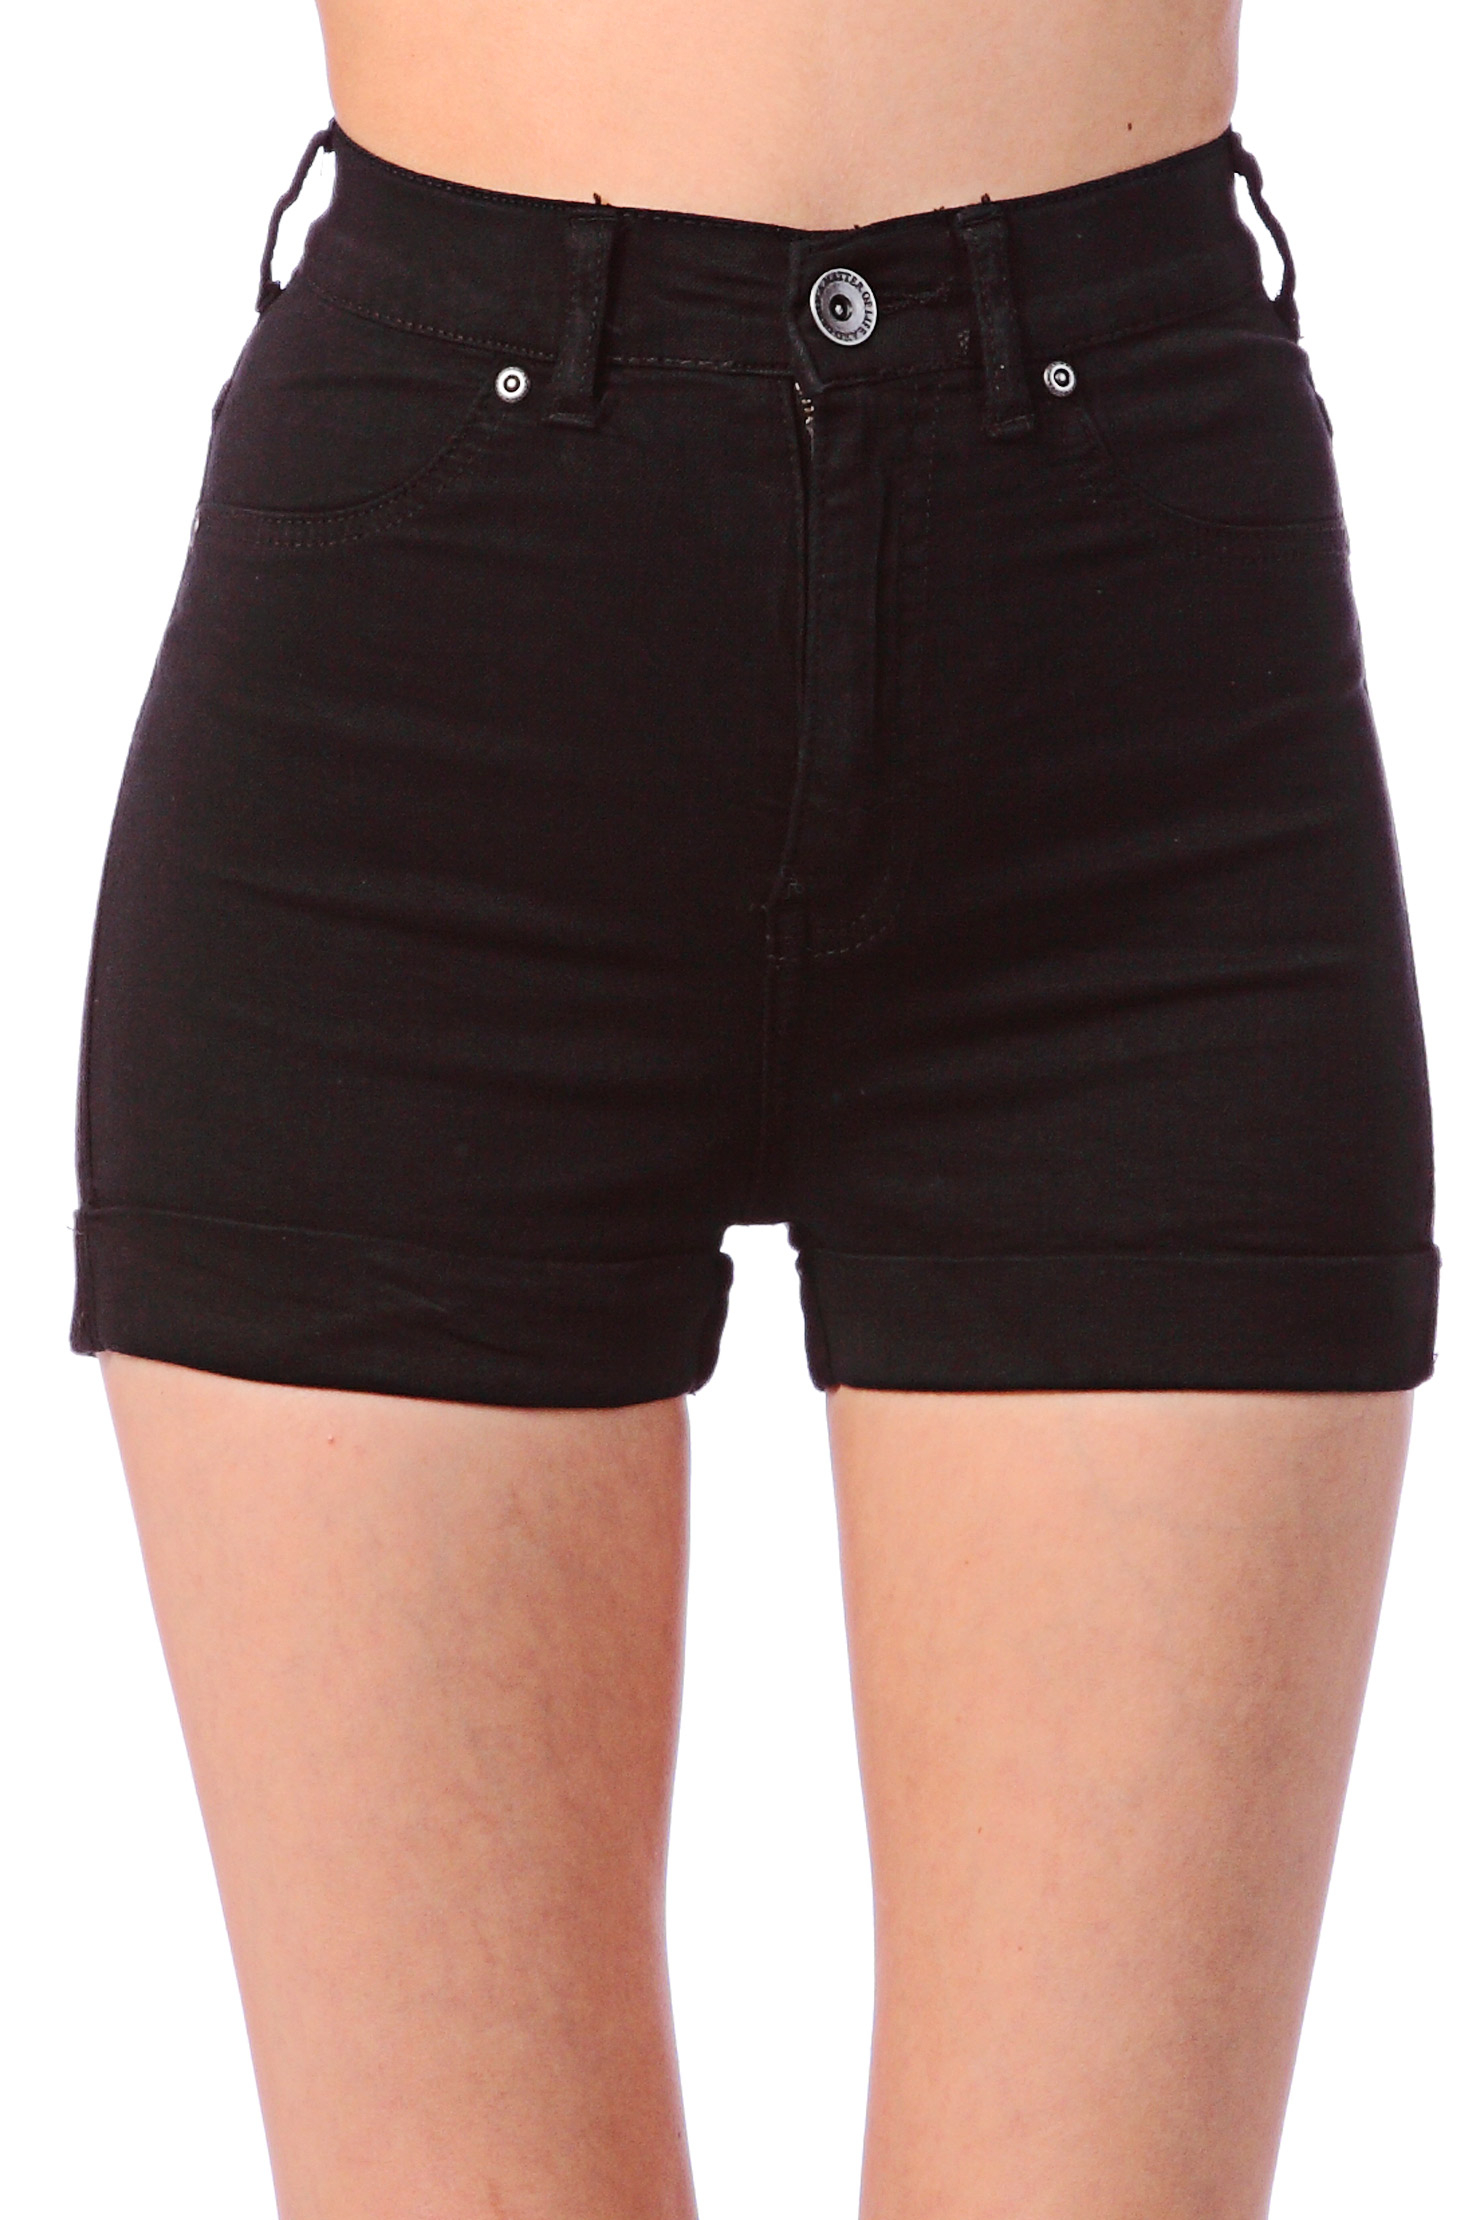 Discover Men's Black Shorts, Women's Black Shorts, Boys Black Shorts and more today at Macy's. Macy's Presents: The Edit - A curated mix of fashion and inspiration Check It Out Free Shipping with $49 purchase + Free Store Pickup.